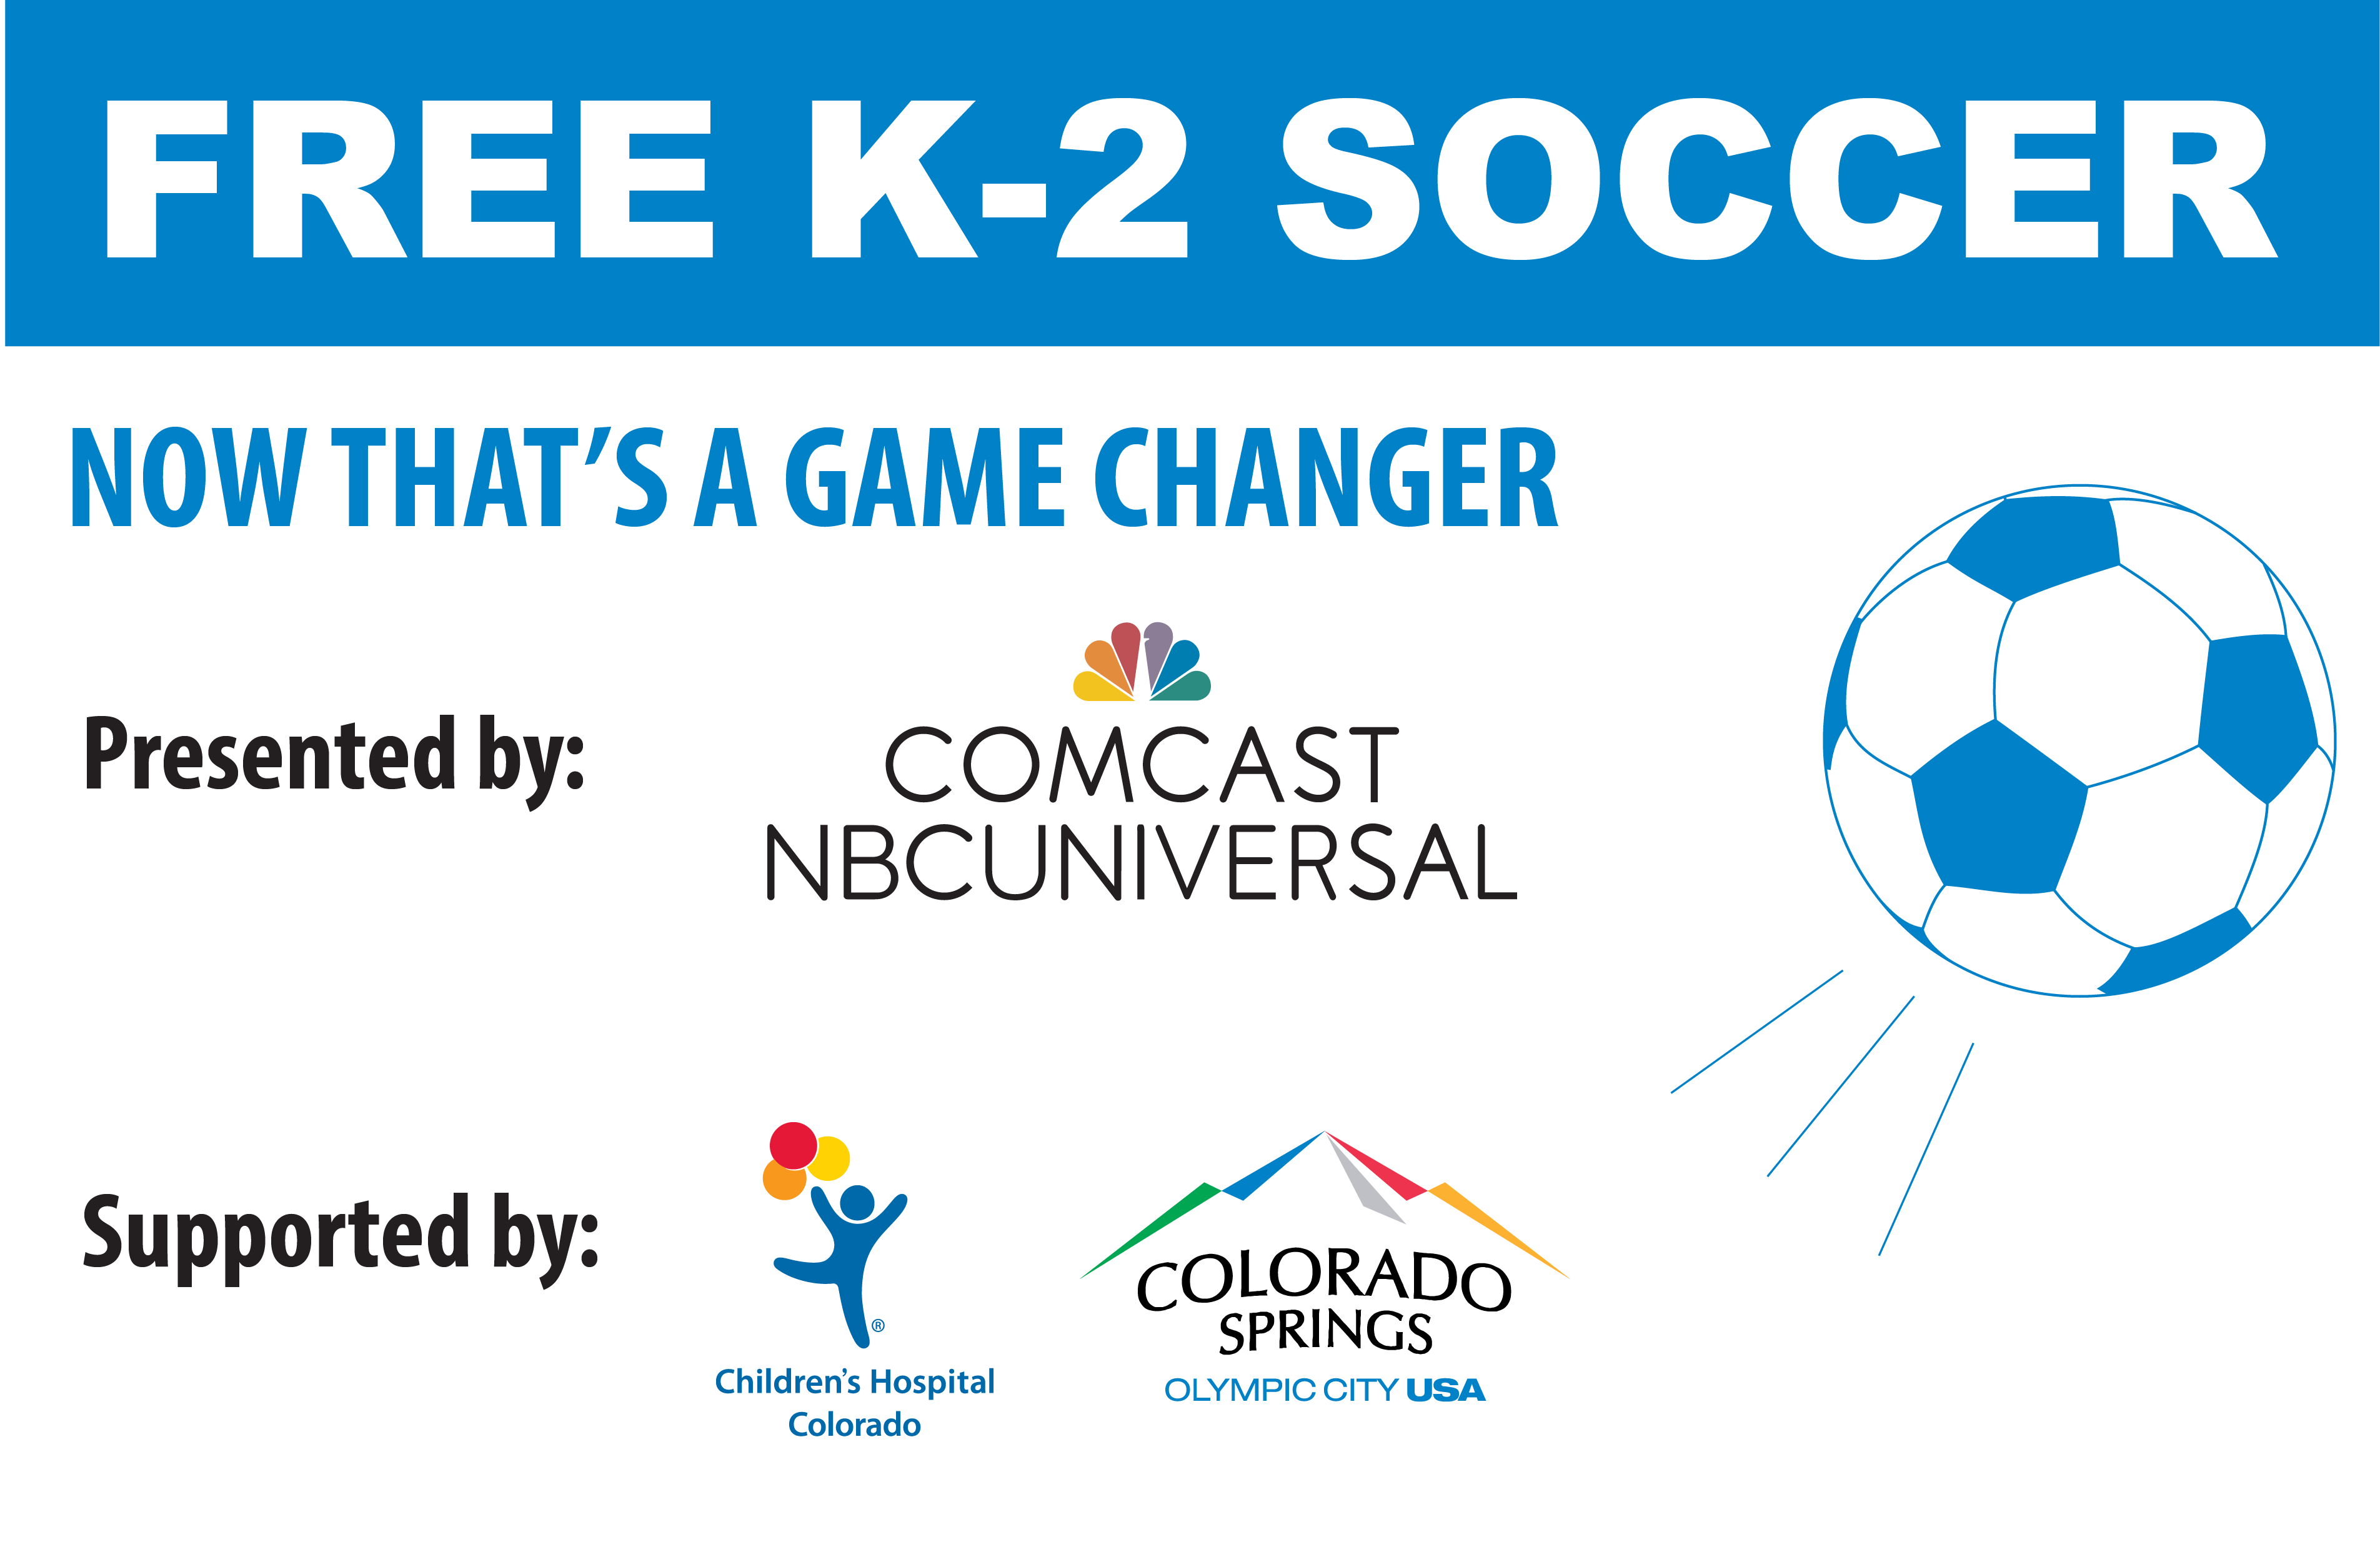 Free k-2 Soccer click image link to learn more